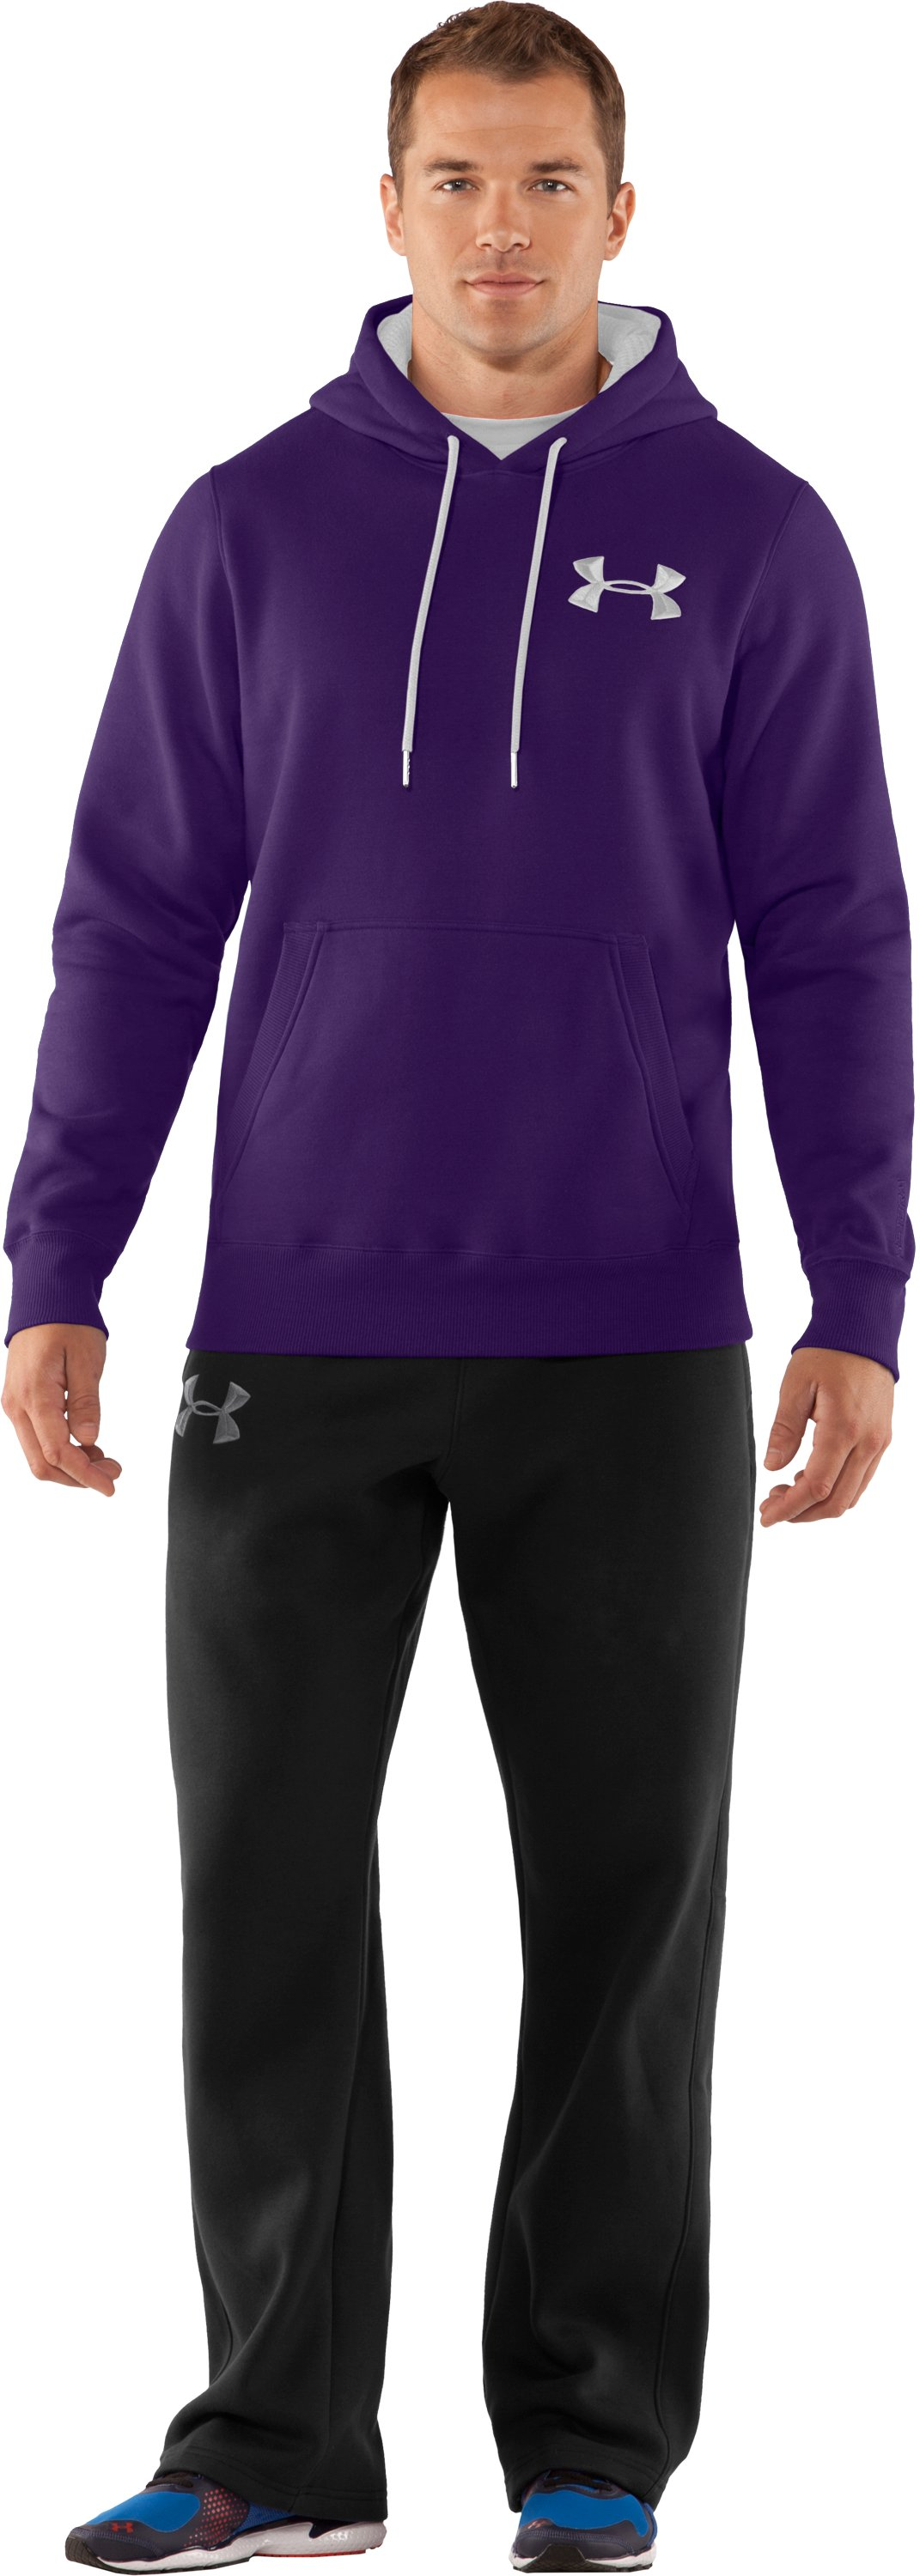 Men's Charged Cotton® Storm Pullover Hoodie, Zone